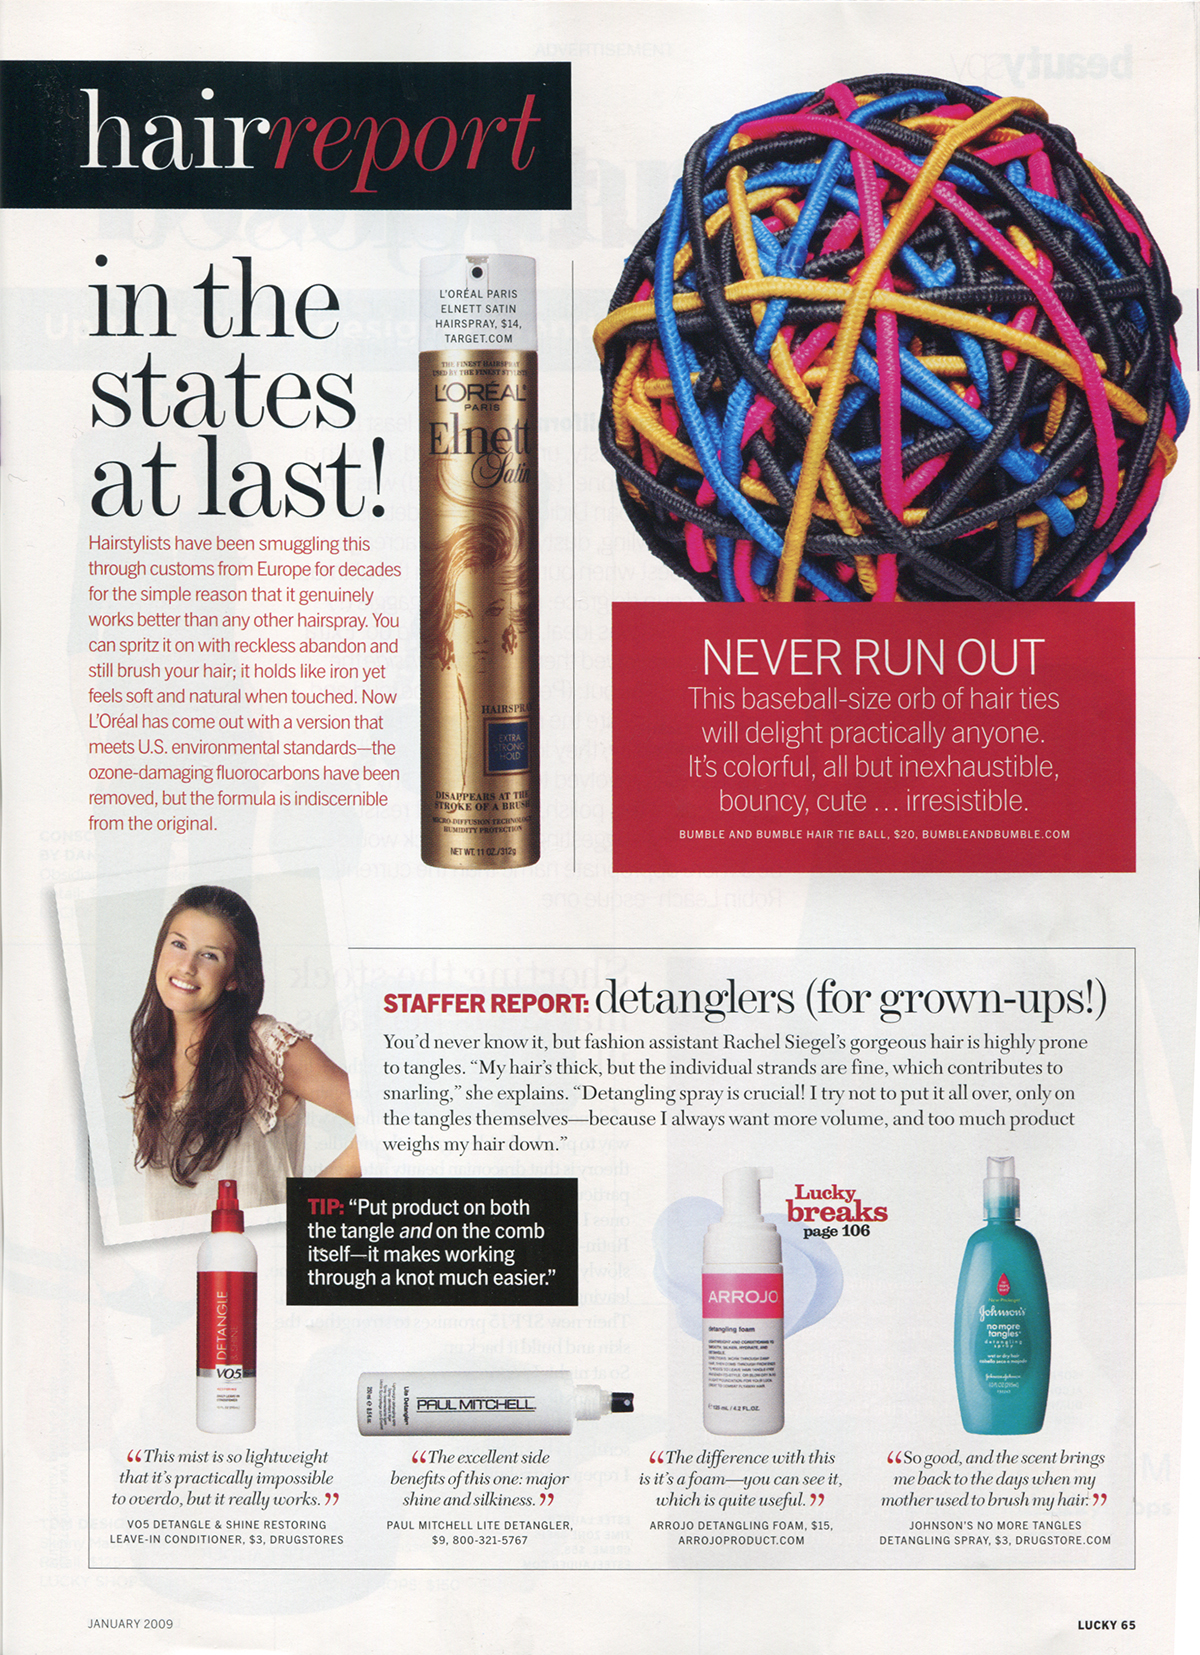 Lucky Magazine features Bumble and Bumble's 'Bandball' designed by Piet Houtenbos for Bumbles holiday gift box.